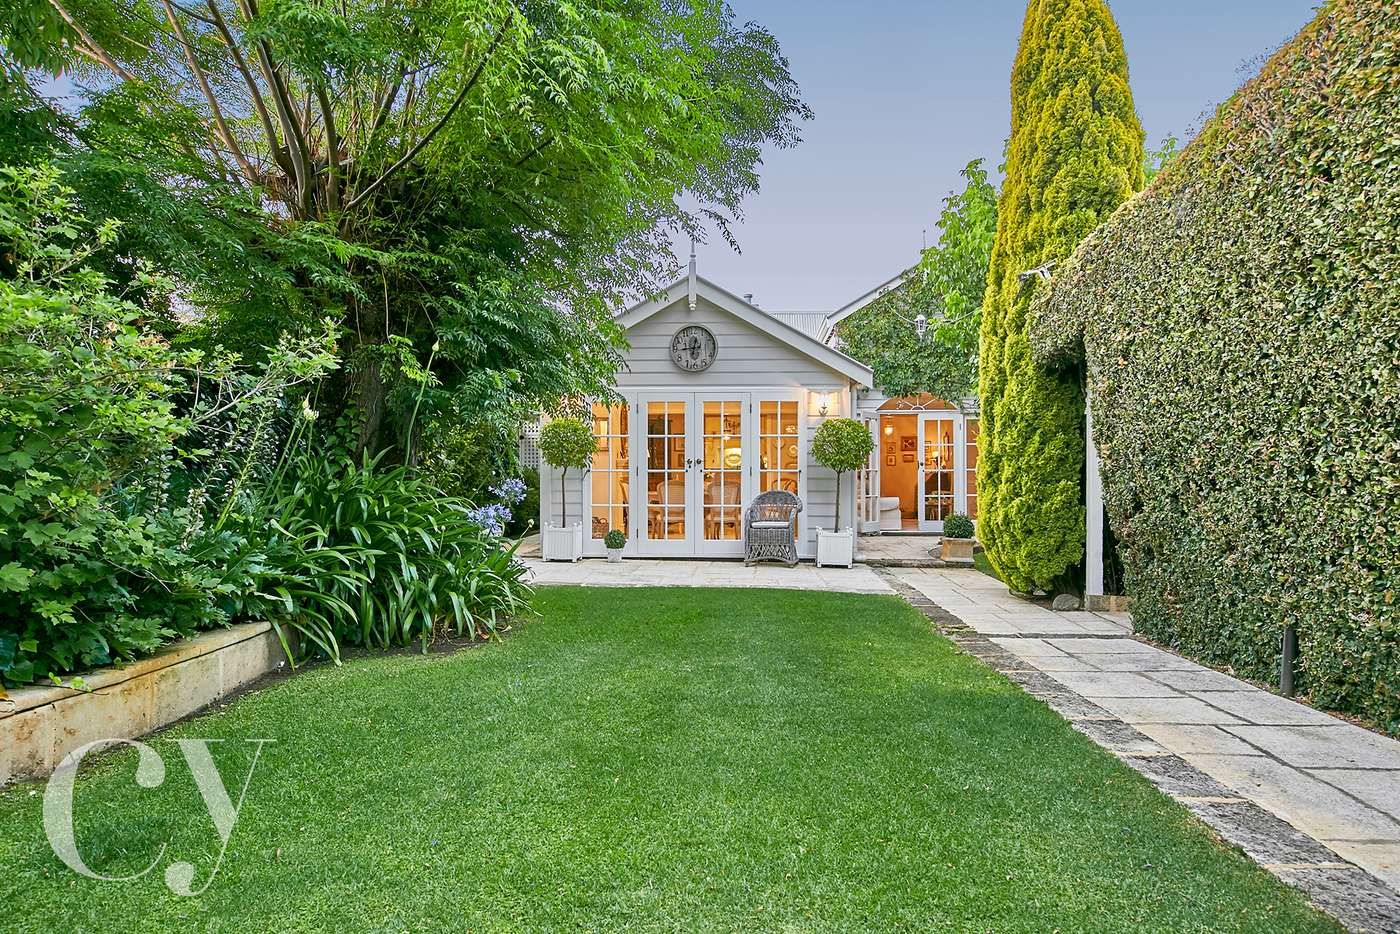 Main view of Homely house listing, 5 Water Street, Guildford WA 6055